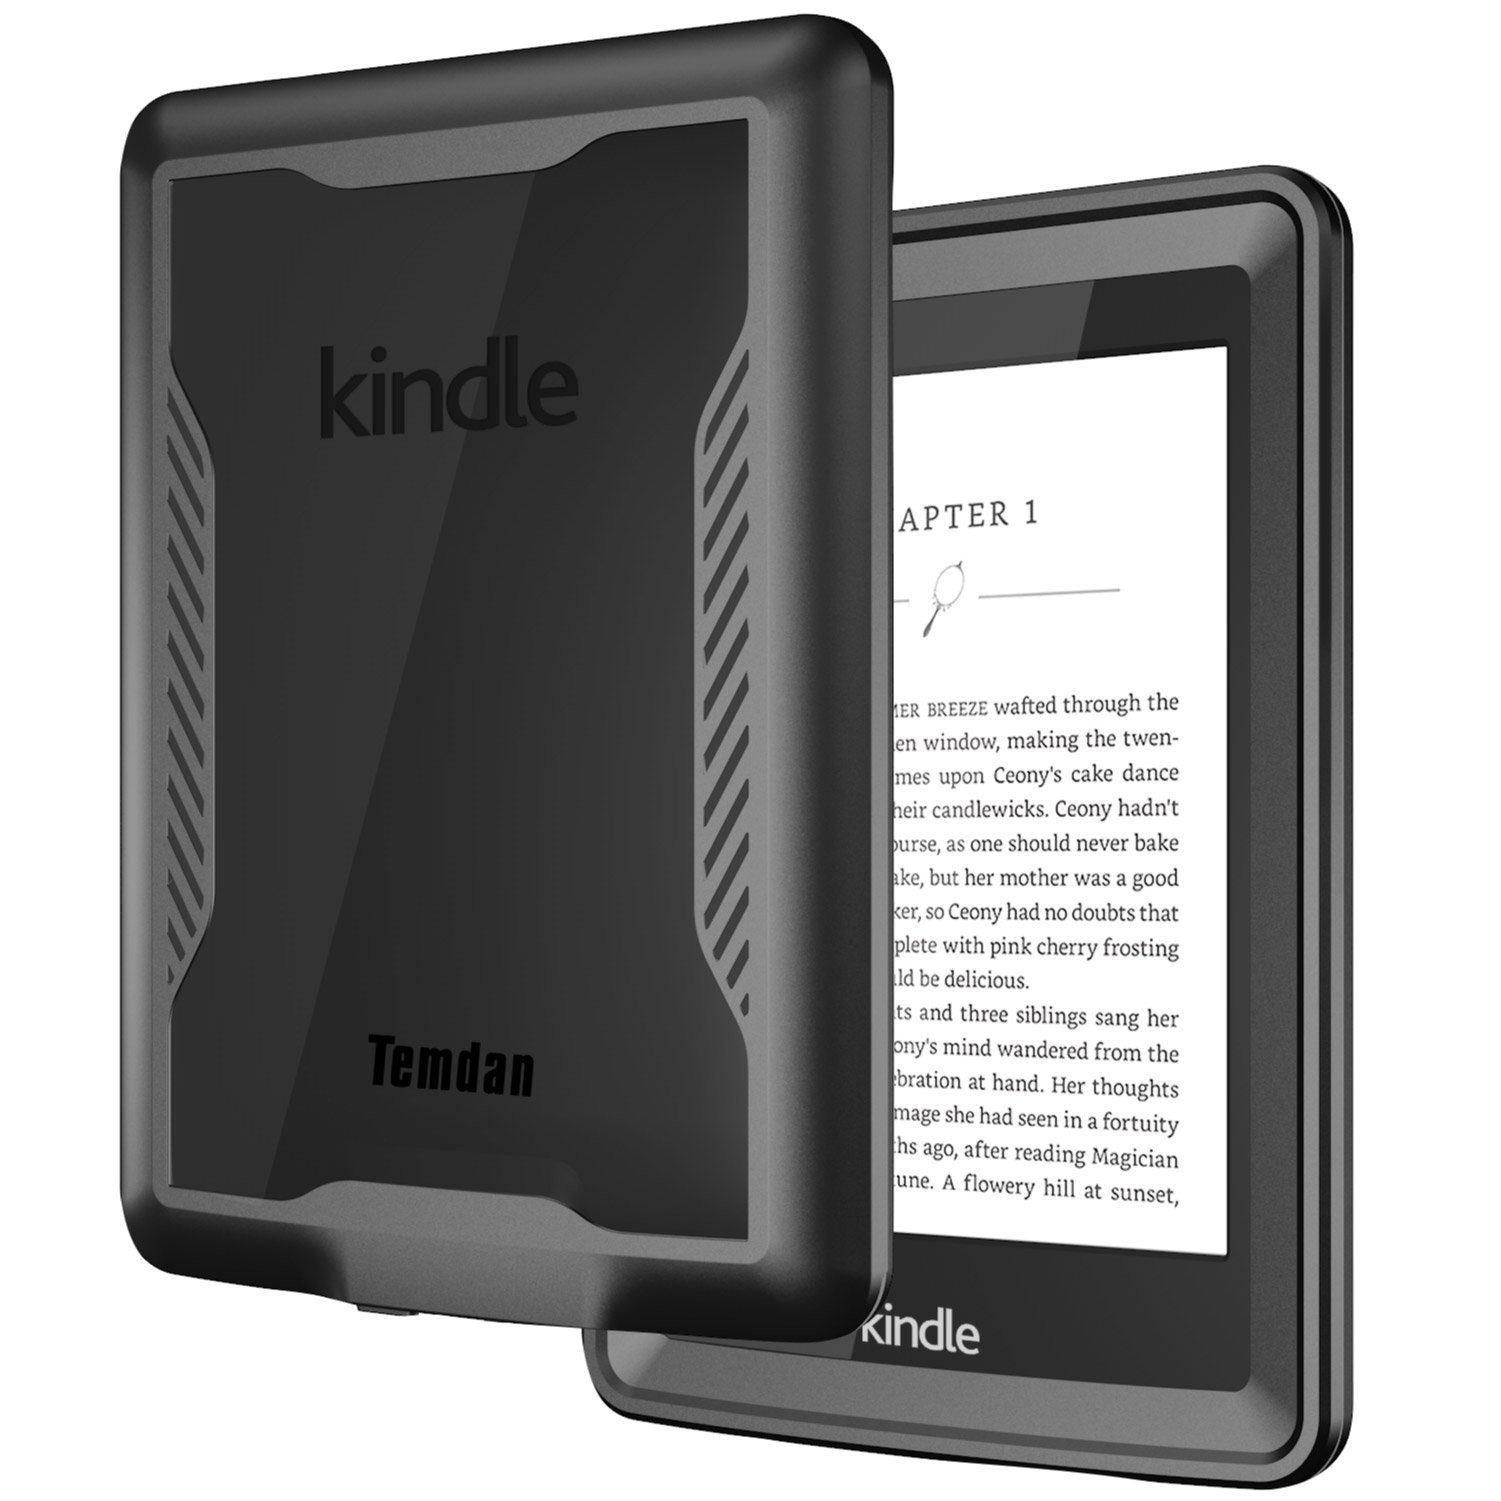 Temdan Kindle Paperwhite Waterproof Case Rugged Sleek Transparent Cover with Built in Screen Protector Waterproof Case for Kindle Paperwhite. by Temdan (Image #1)